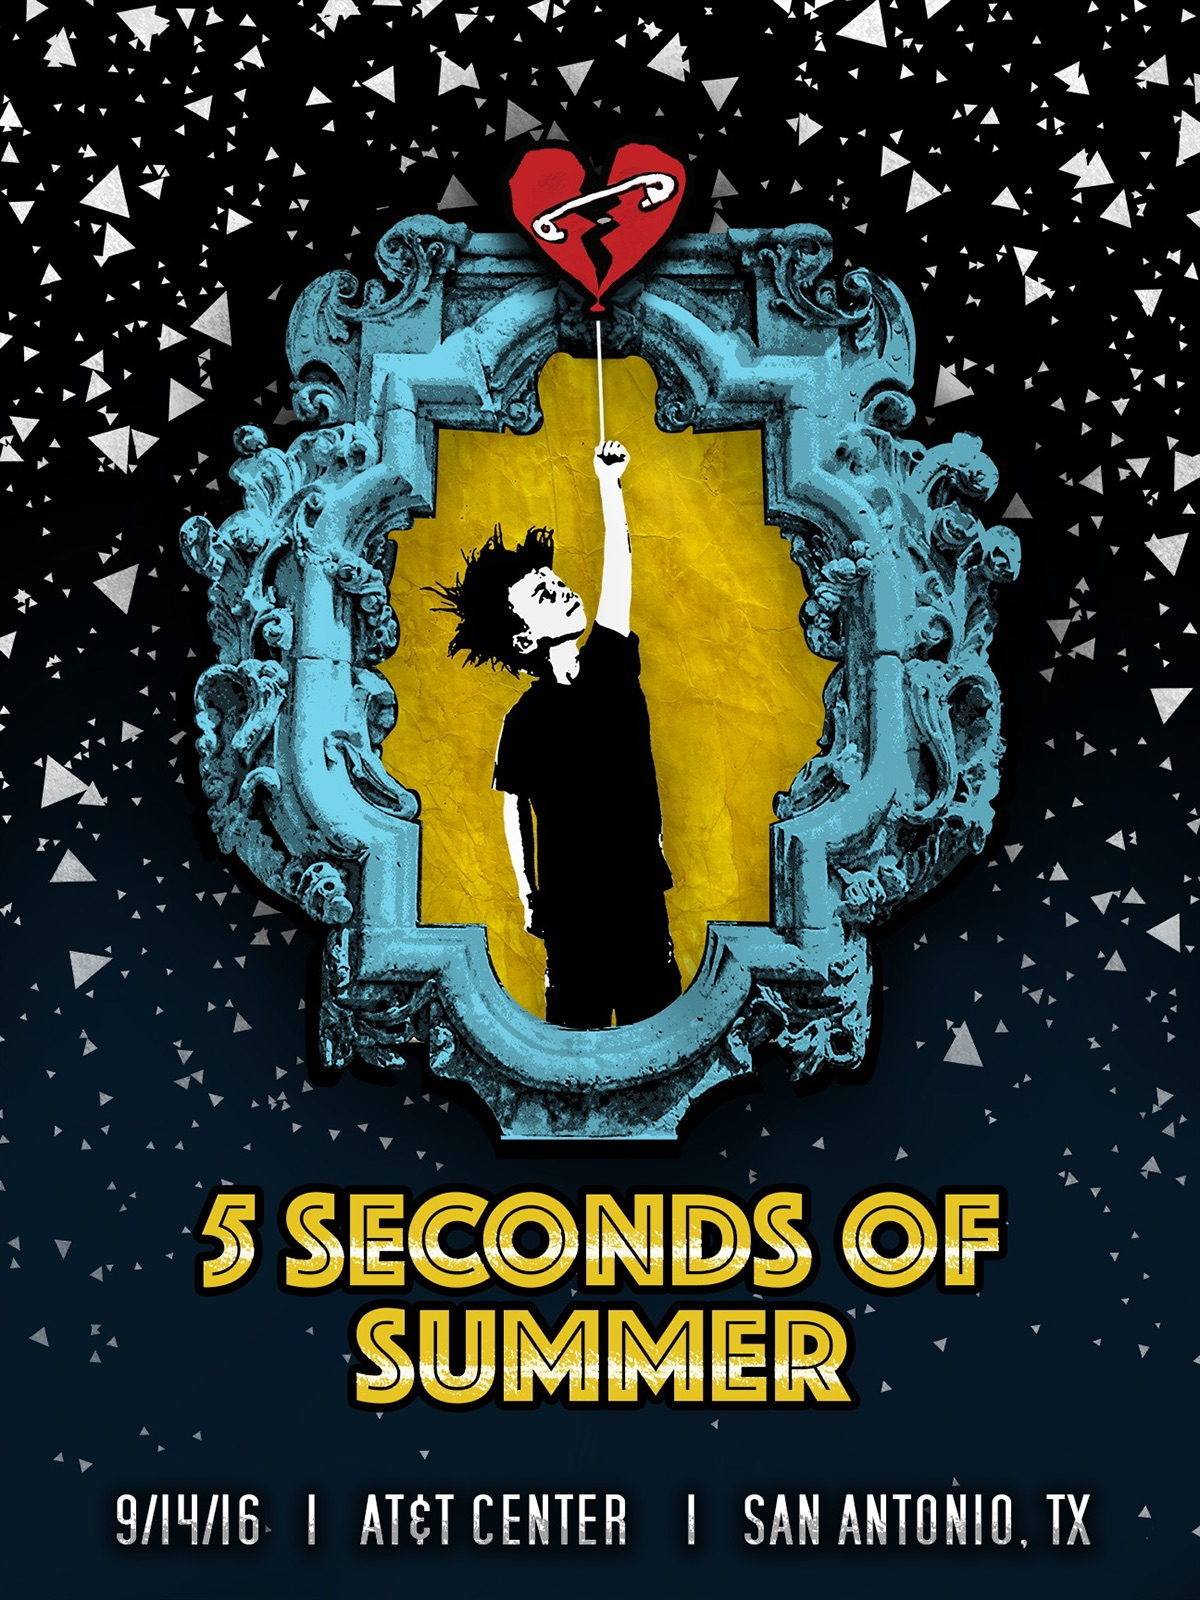 5 seconds of summer concert posters on